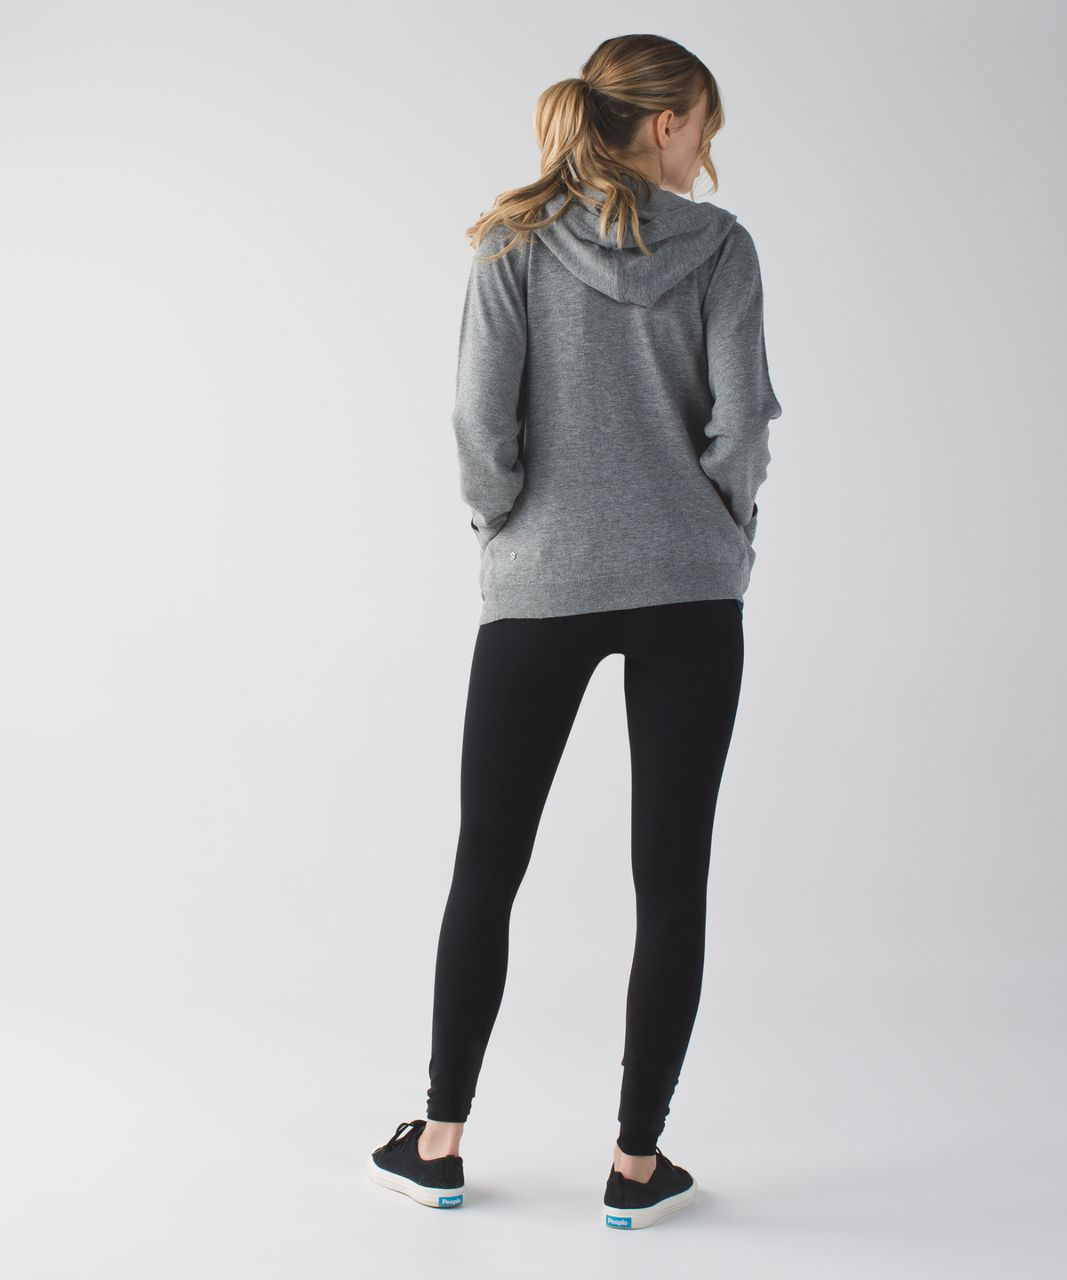 Lululemon Wunder Under Pant - Black (Second Release)